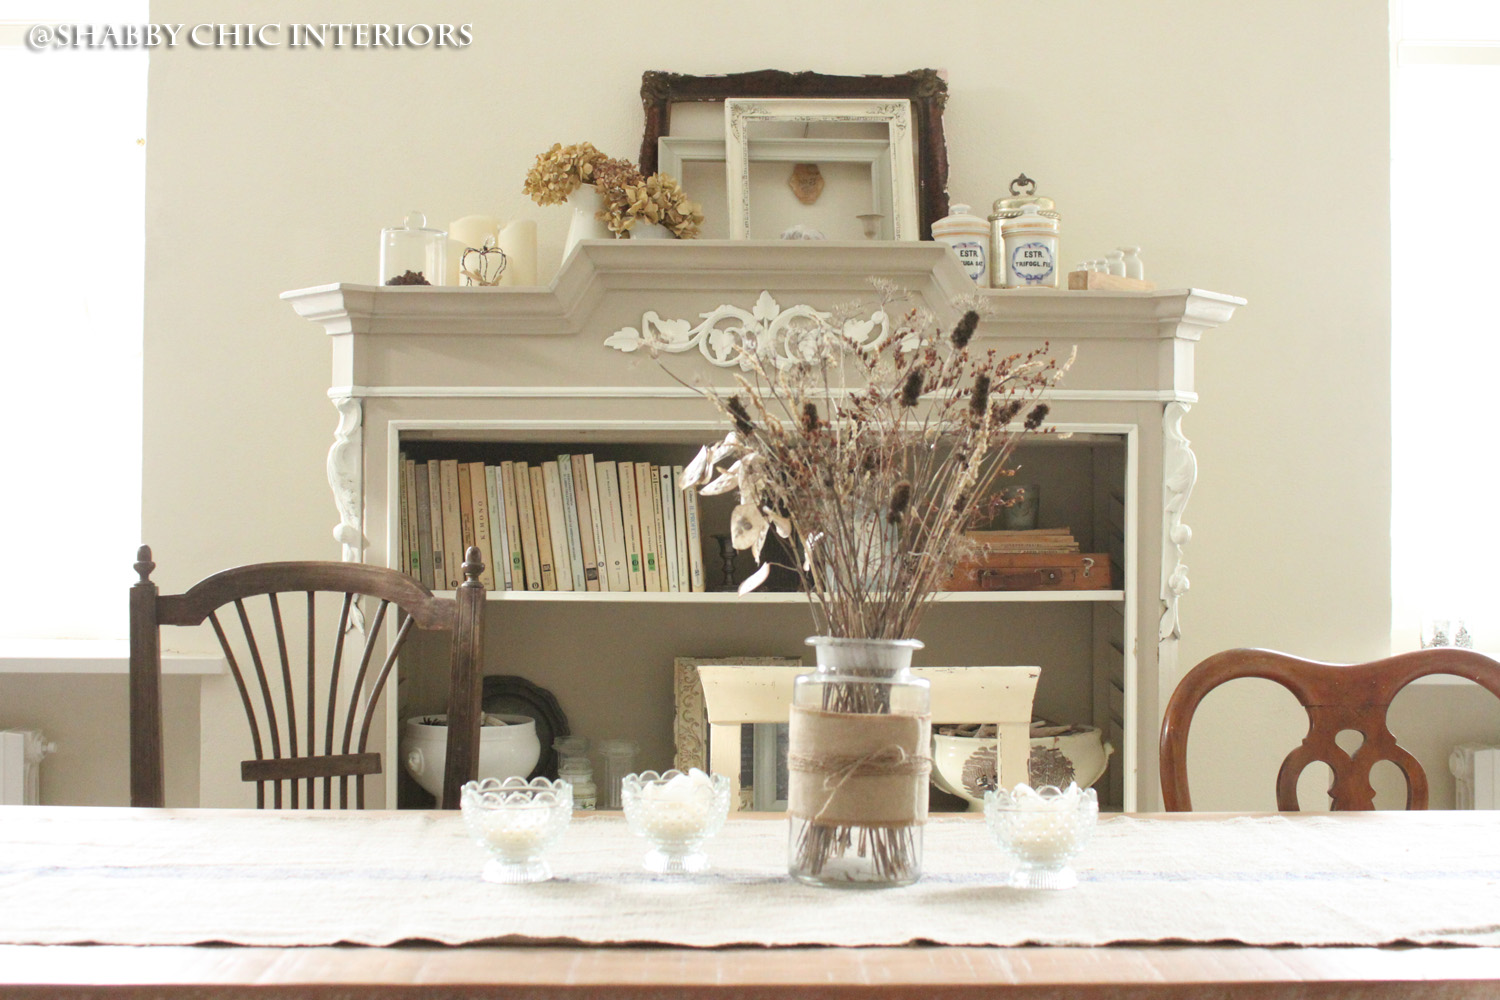 Photo By Shabby Chic Interiors. Don't Copy Or Use Whitout Permission #8D6F3E 1500 1000 Dipingere Una Sala Da Pranzo